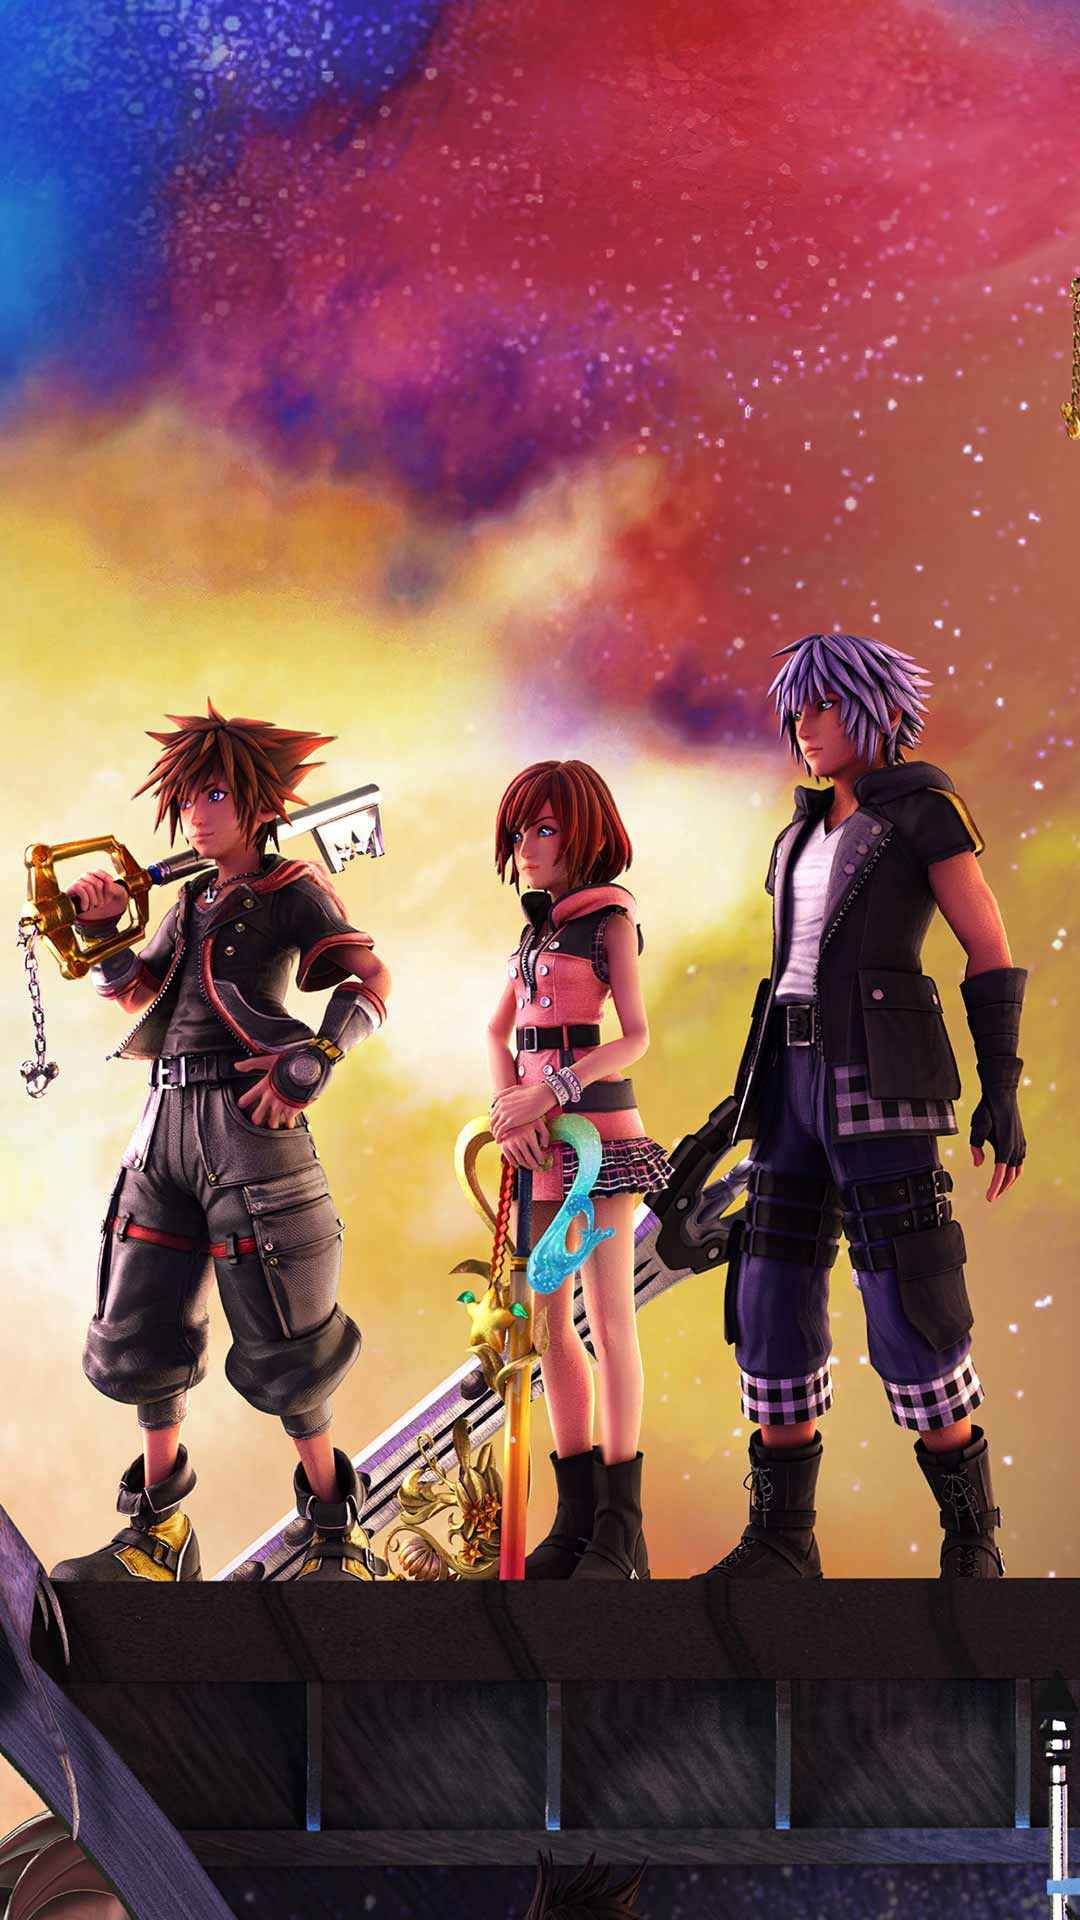 20 Kingdom Hearts 3 Phone Wallpaper Hd Backgrounds Iphone Android Free Characters Art Download In 2020 Kingdom Hearts Wallpaper Kingdom Hearts Heart Wallpaper Hd